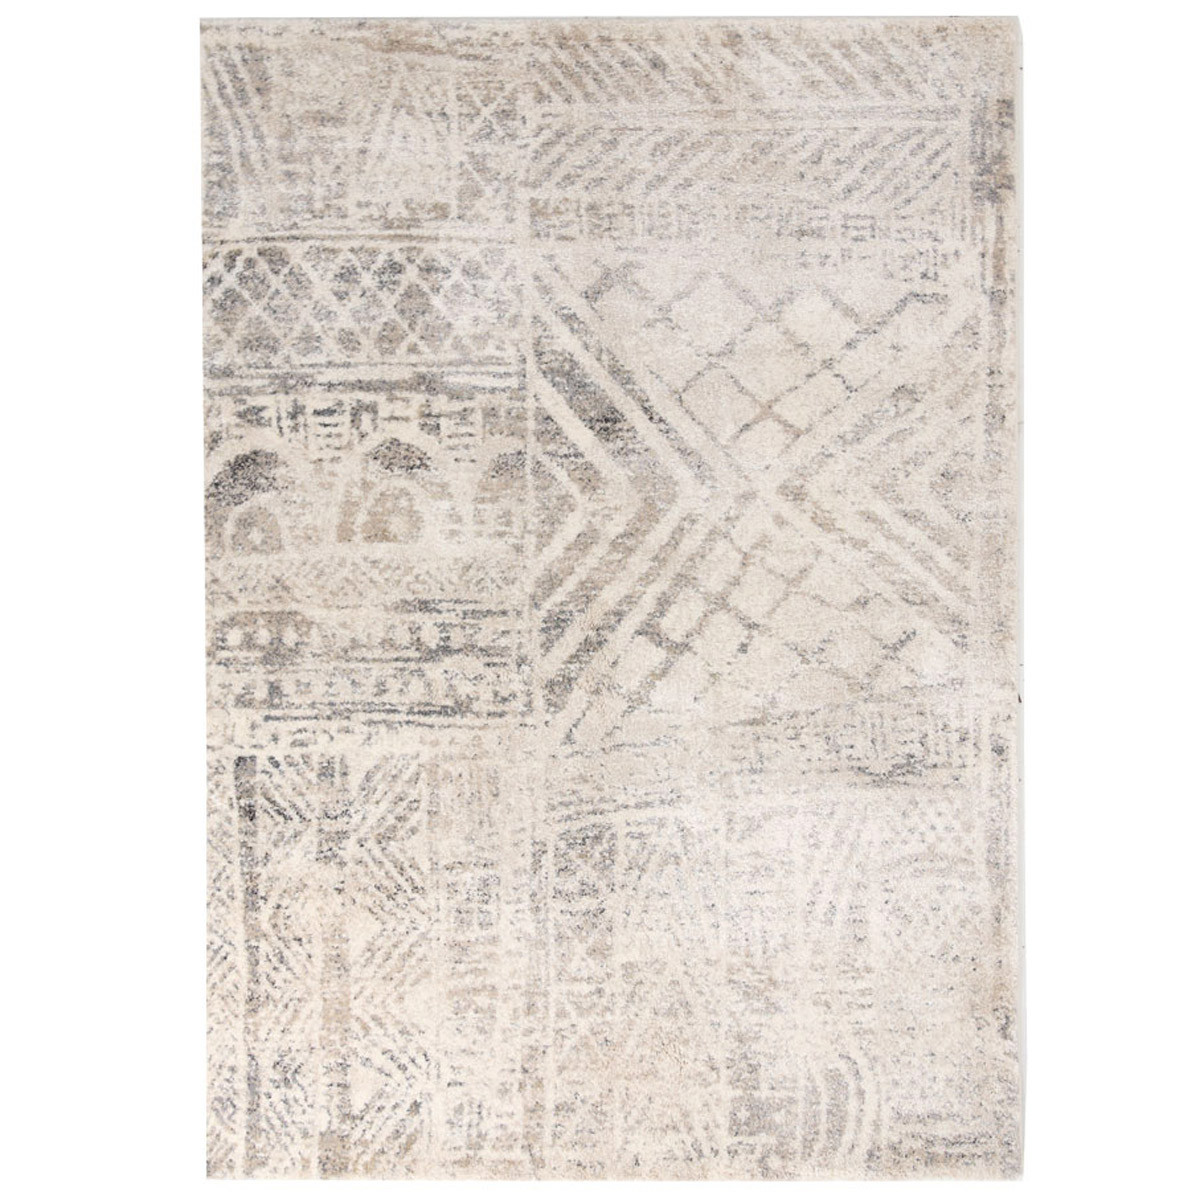 Χαλί (160x230) Royal Carpets Bali 078 White